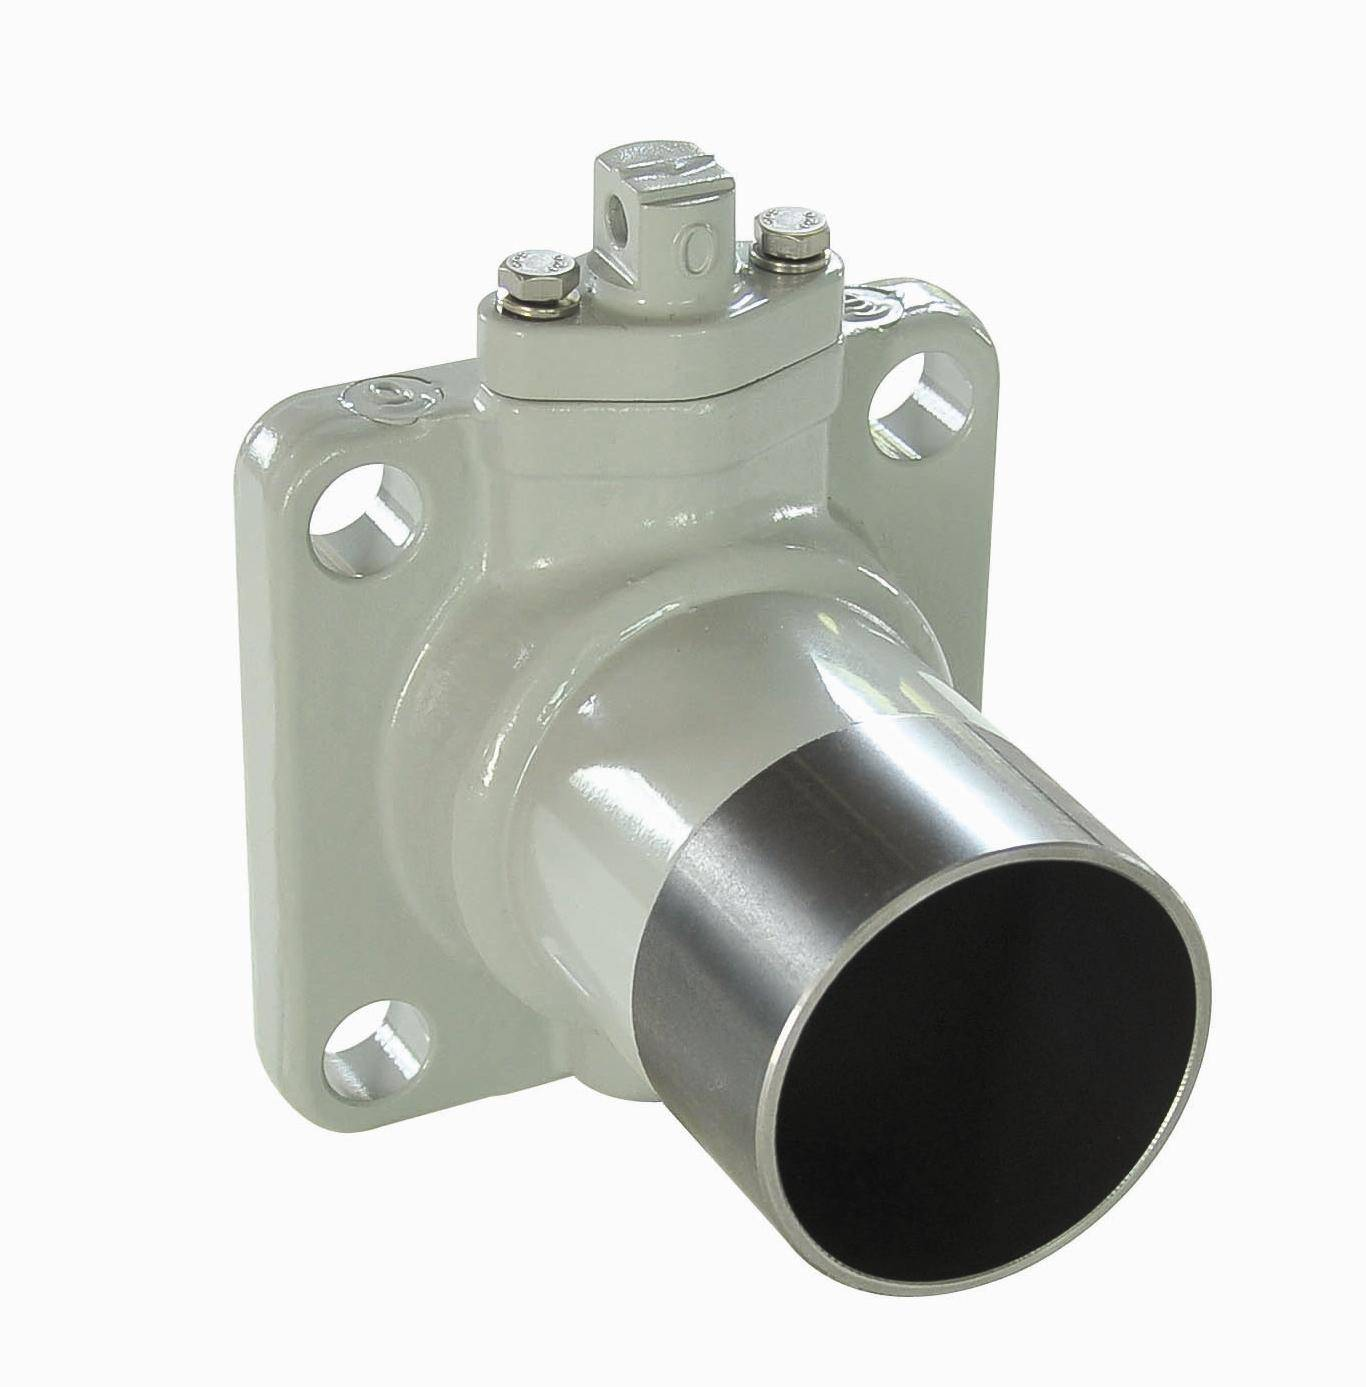 Part No : Bk-BF80-Z00 DN 80 BUTTERFLY VALVE, RADIATOR VALVE